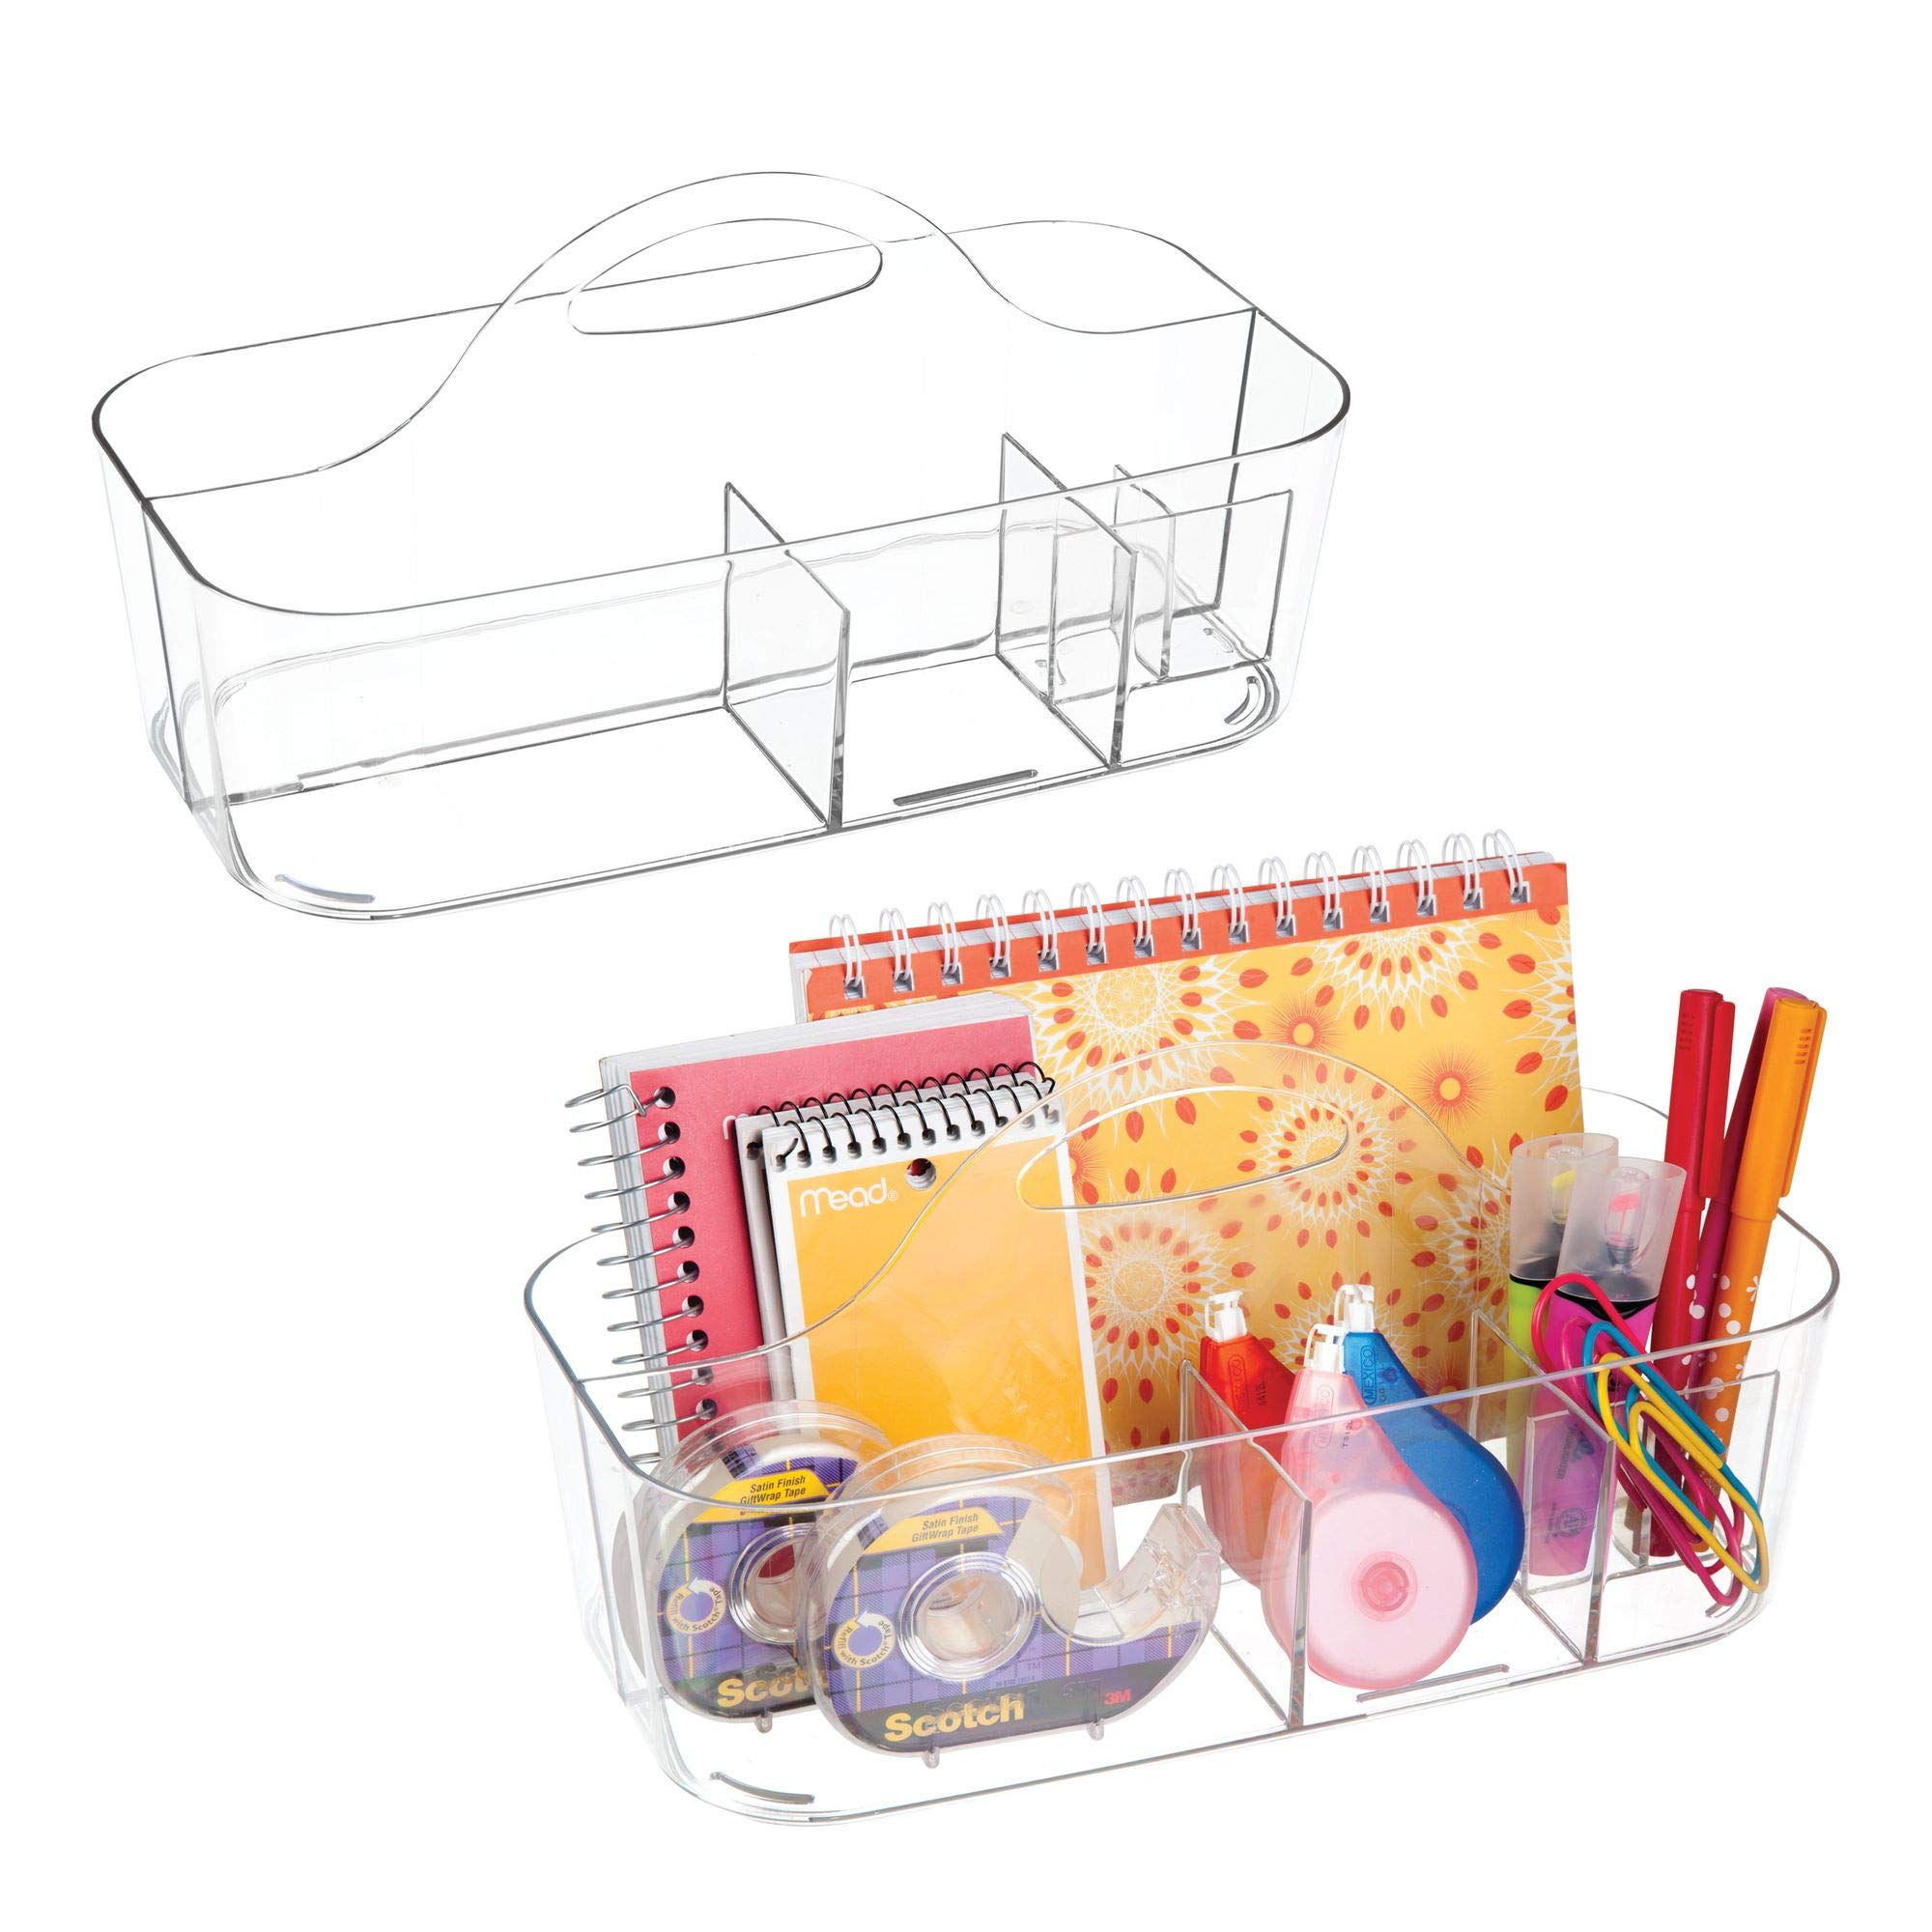 mDesign Small Plastic Portable Desk Storage Organizers Totes Caddy for Office - Set of 2, Clear